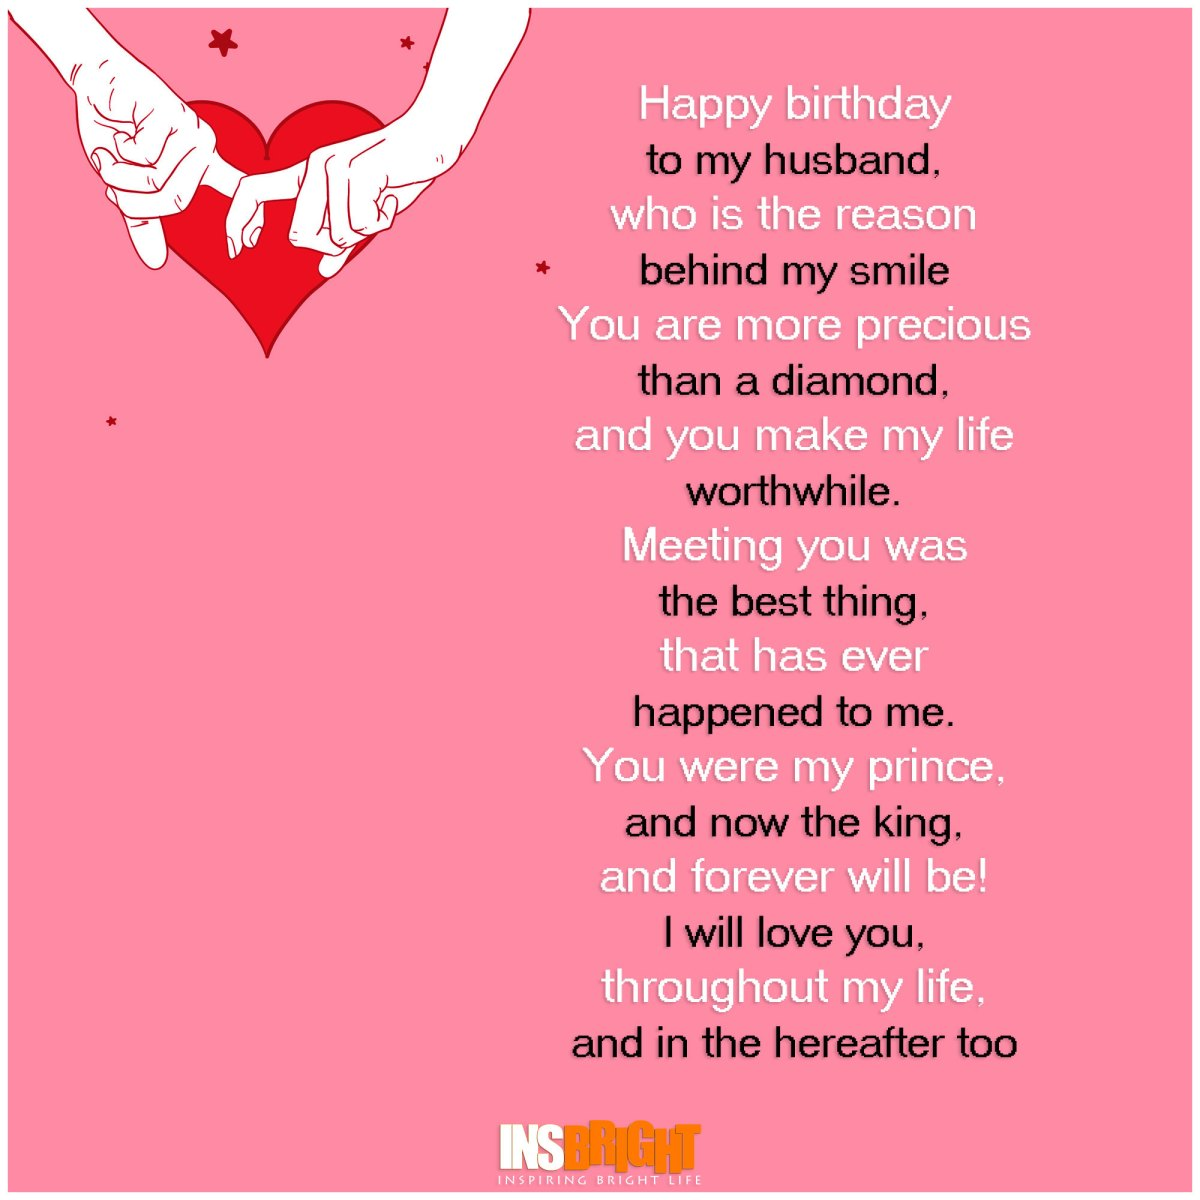 Romantic Happy Birthday Poems For Husband From Wife ...